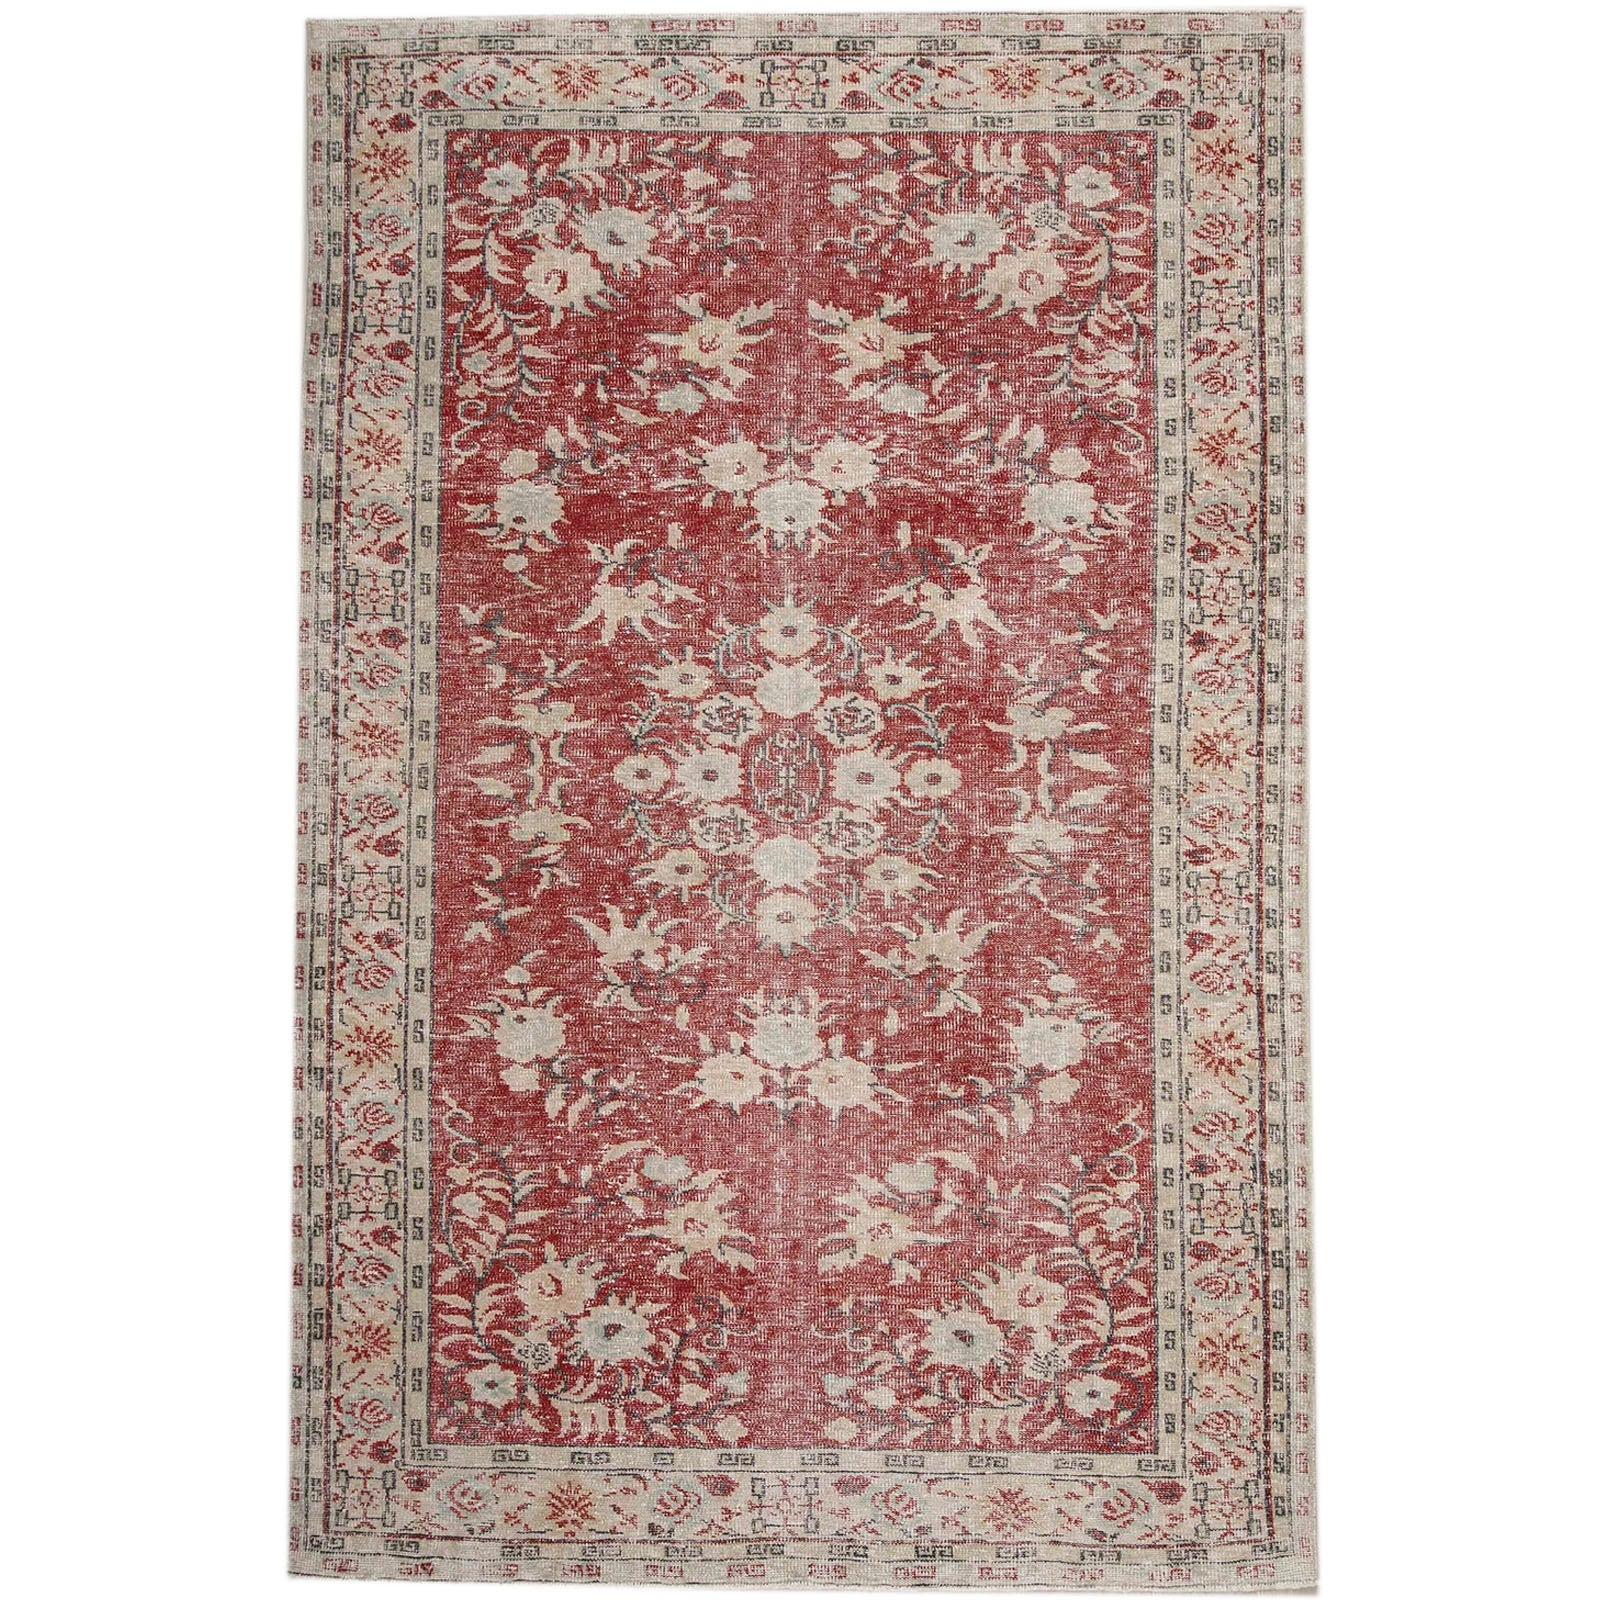 Hali 192X297  CM Bursa Handmade over dyed rug  2632 -  192*297 سجاده بورصة صناعة يدوية على بساط مصبوغ - Shop Online Furniture and Home Decor Store in Dubai, UAE at ebarza